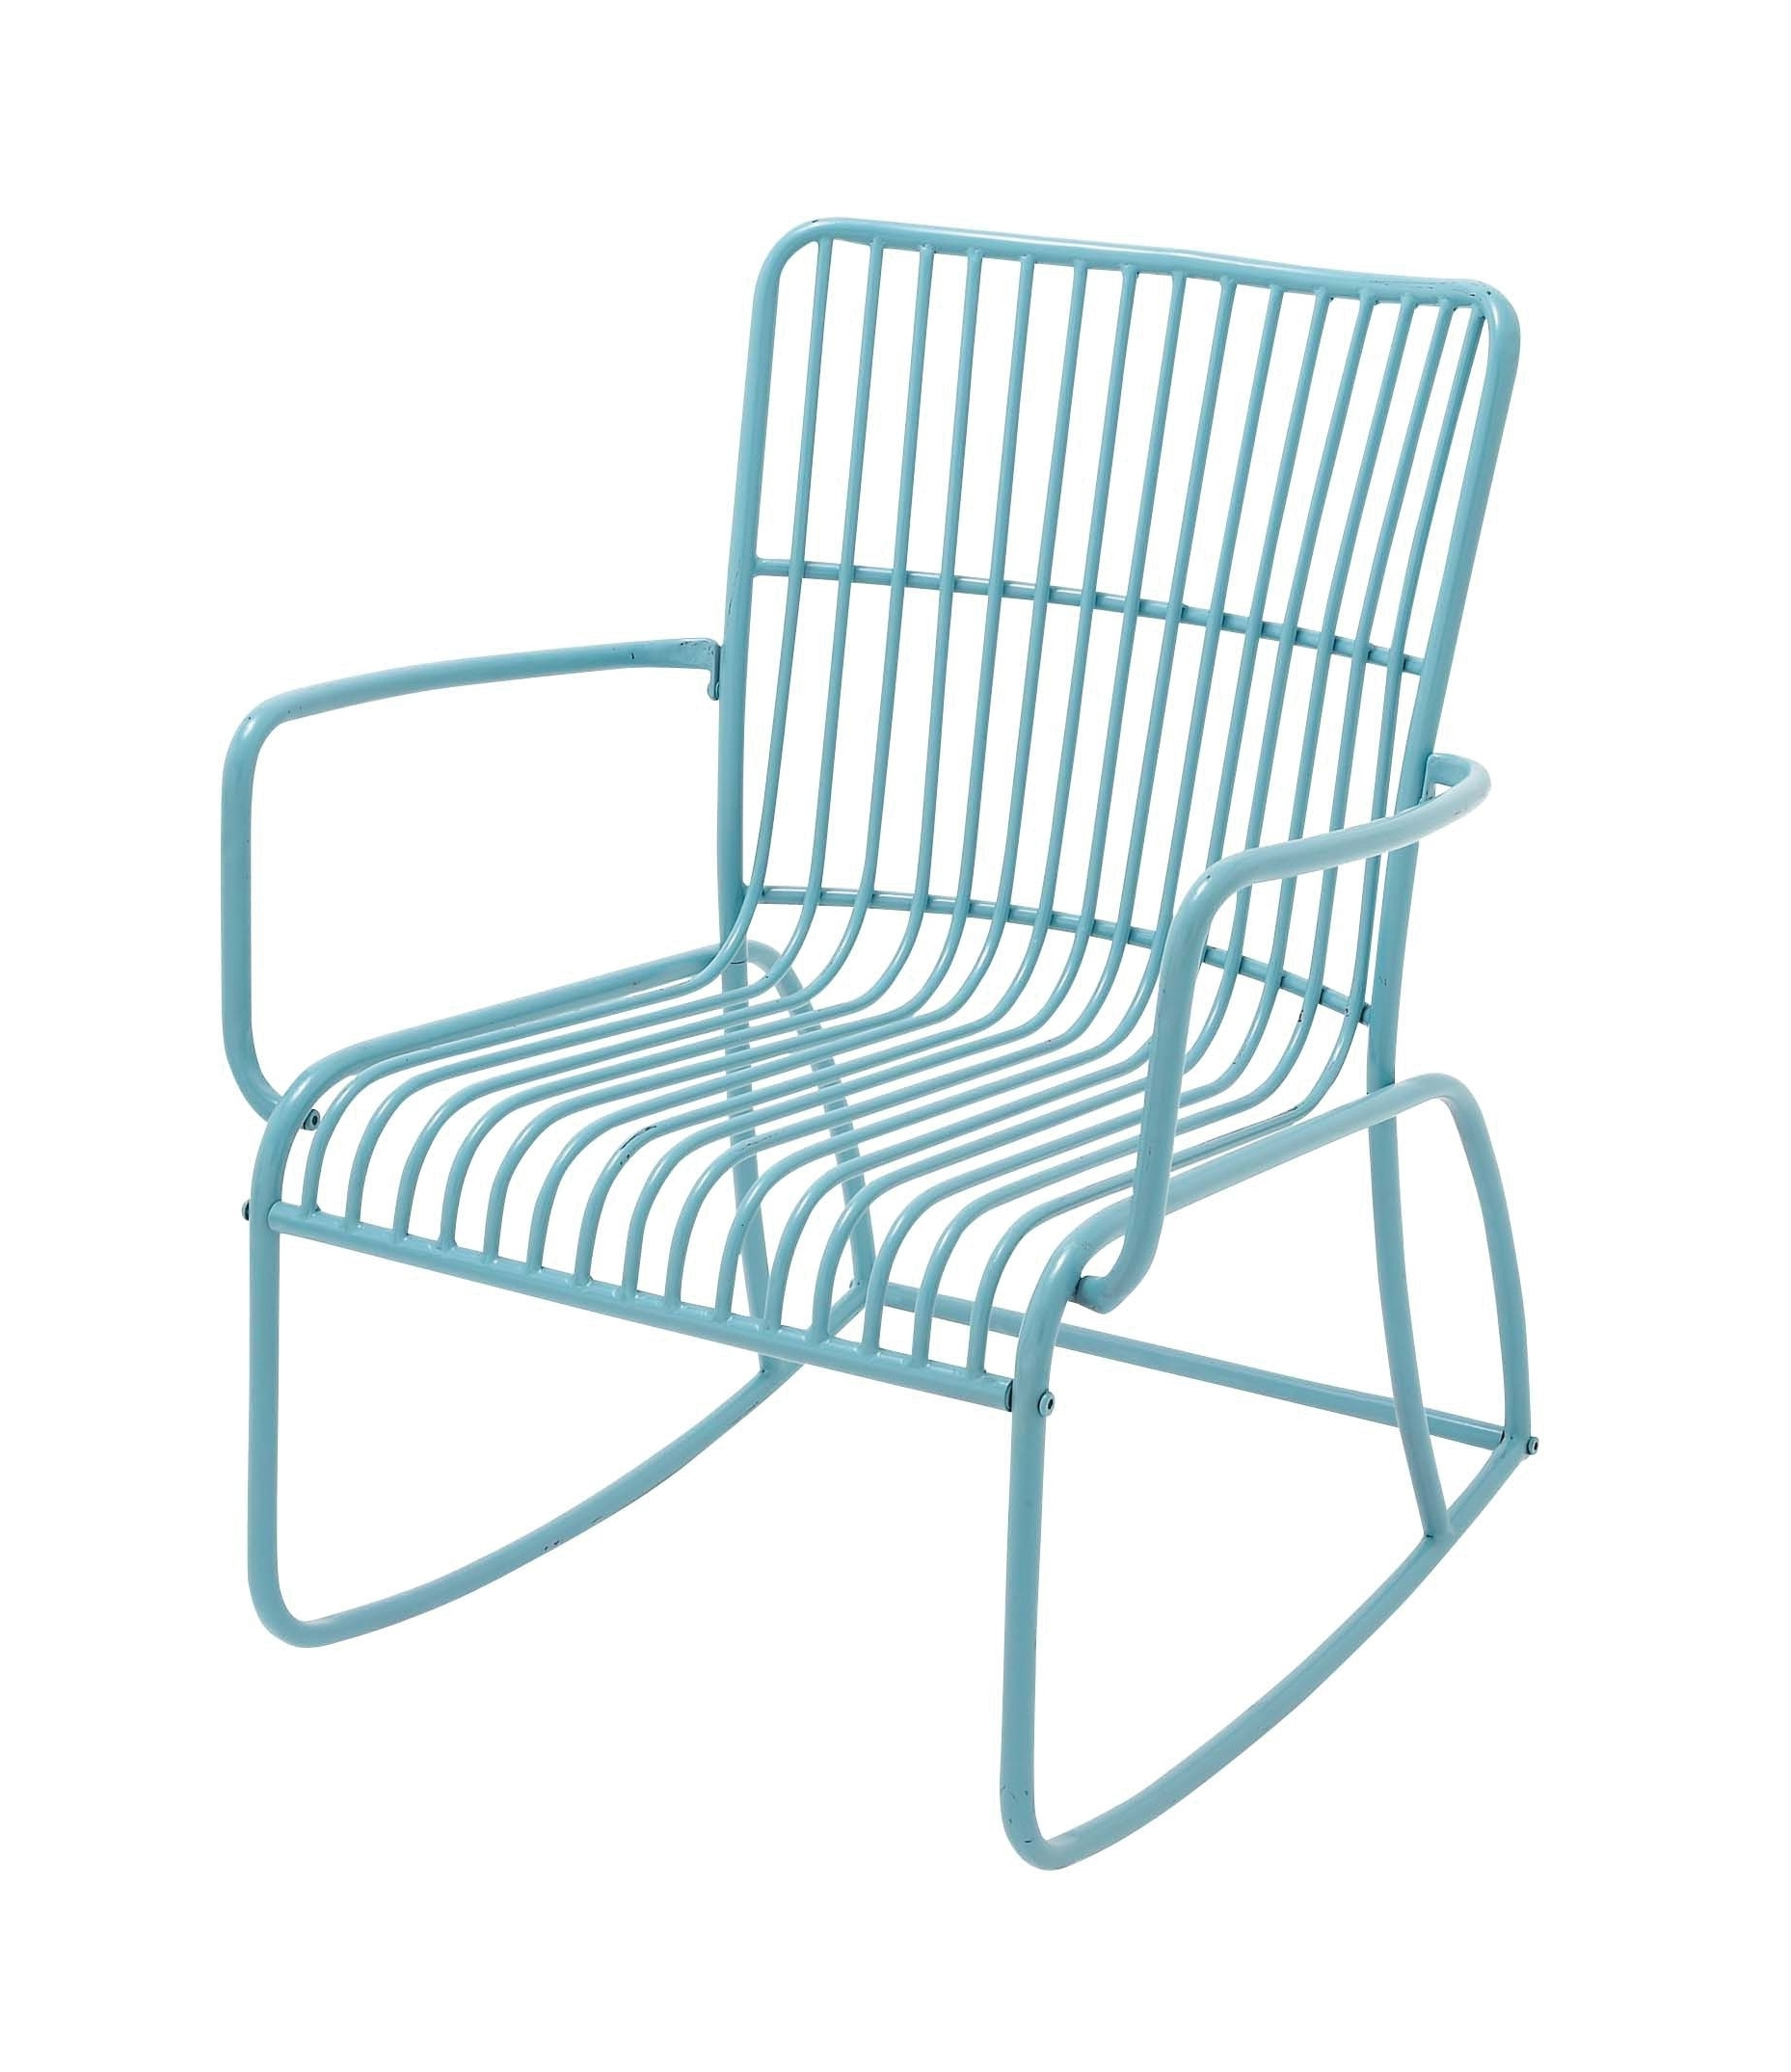 Metal Outdoor Rocking Chair For Fashionable Vintage Metal Rocking Patio Chairs (View 13 of 15)